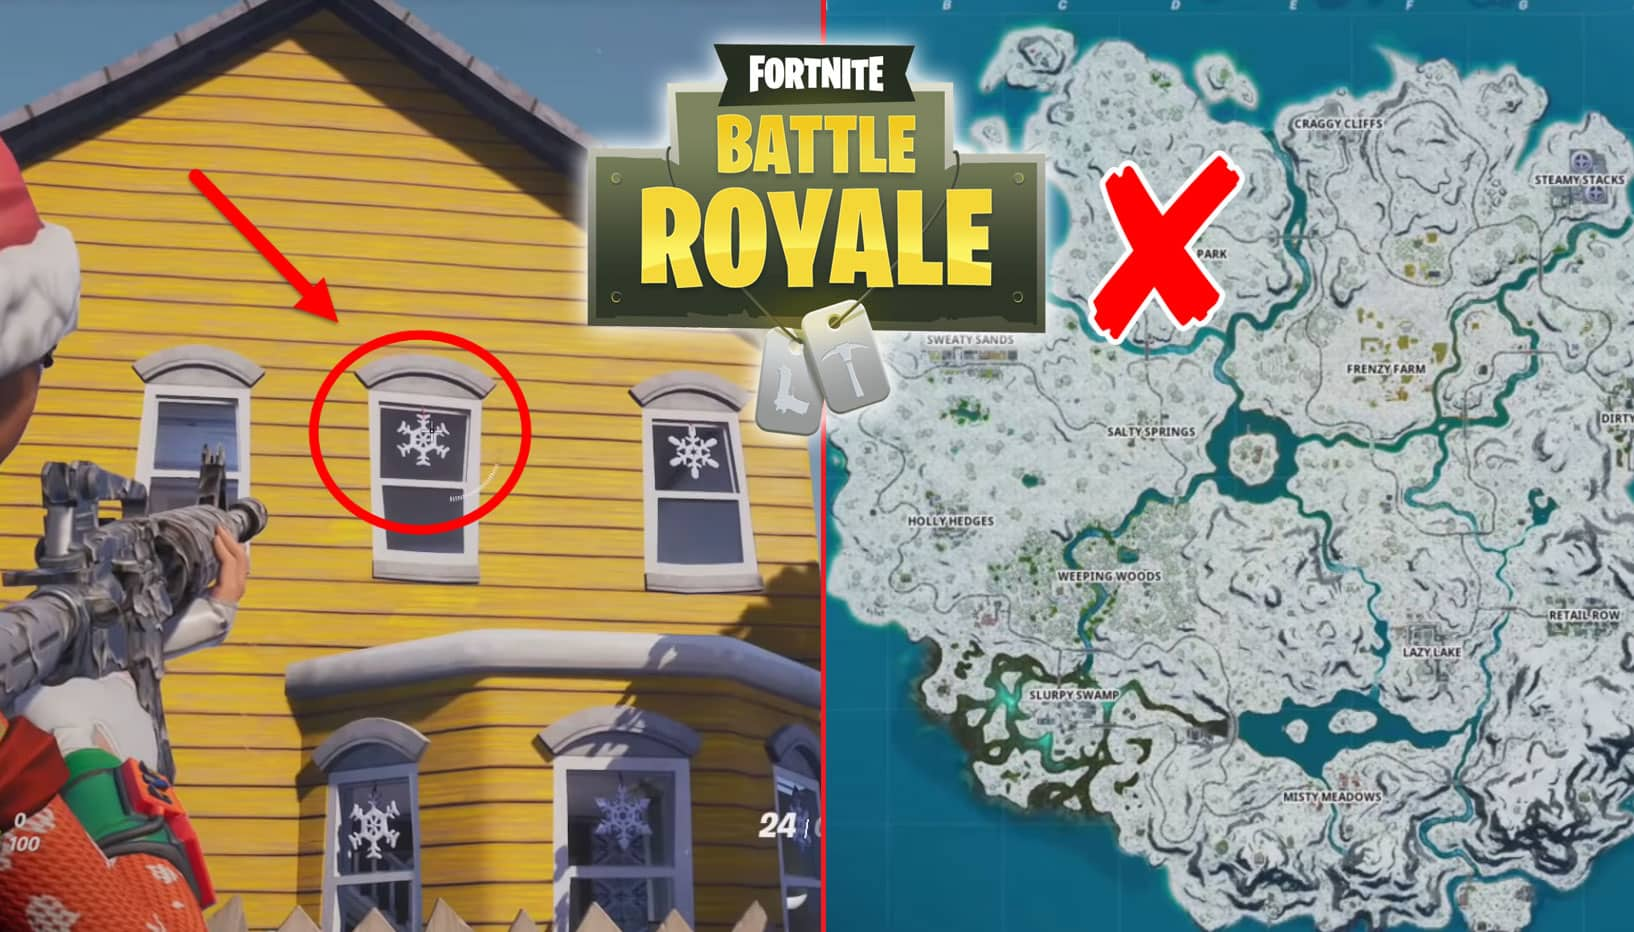 How To Destroy Fortnite Snowflake Decorations - Locations Guide